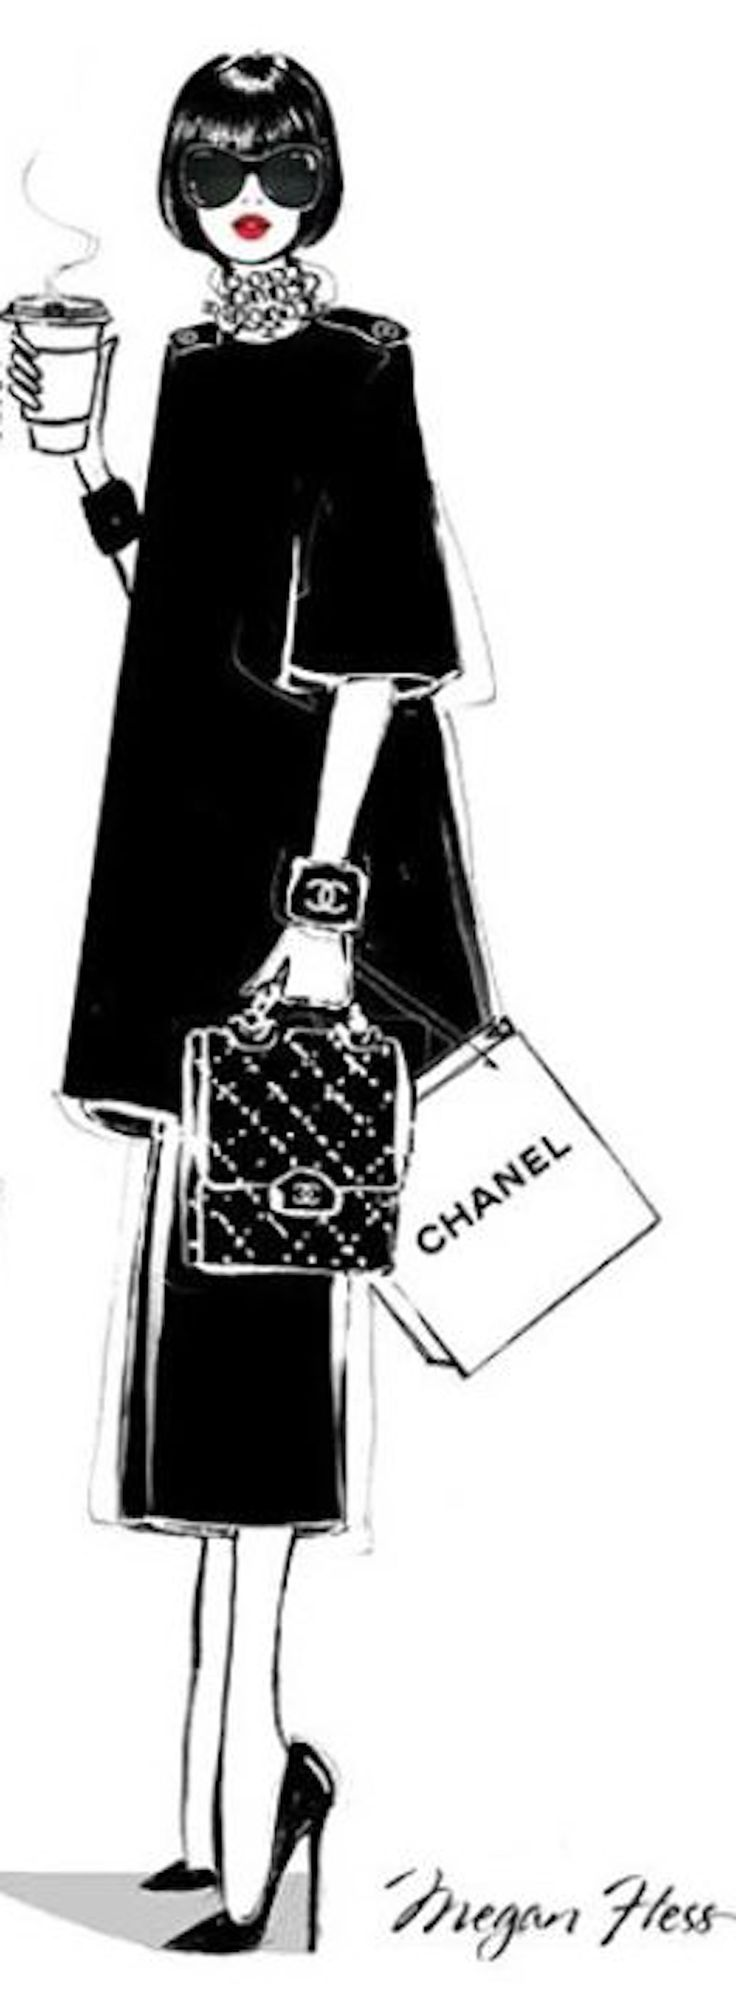 Fashion Sketch figurín de moda #Chanel Style ~ Living a Beautiful Life ~ Megan Hess illustrations art-artwork-fashion- Más